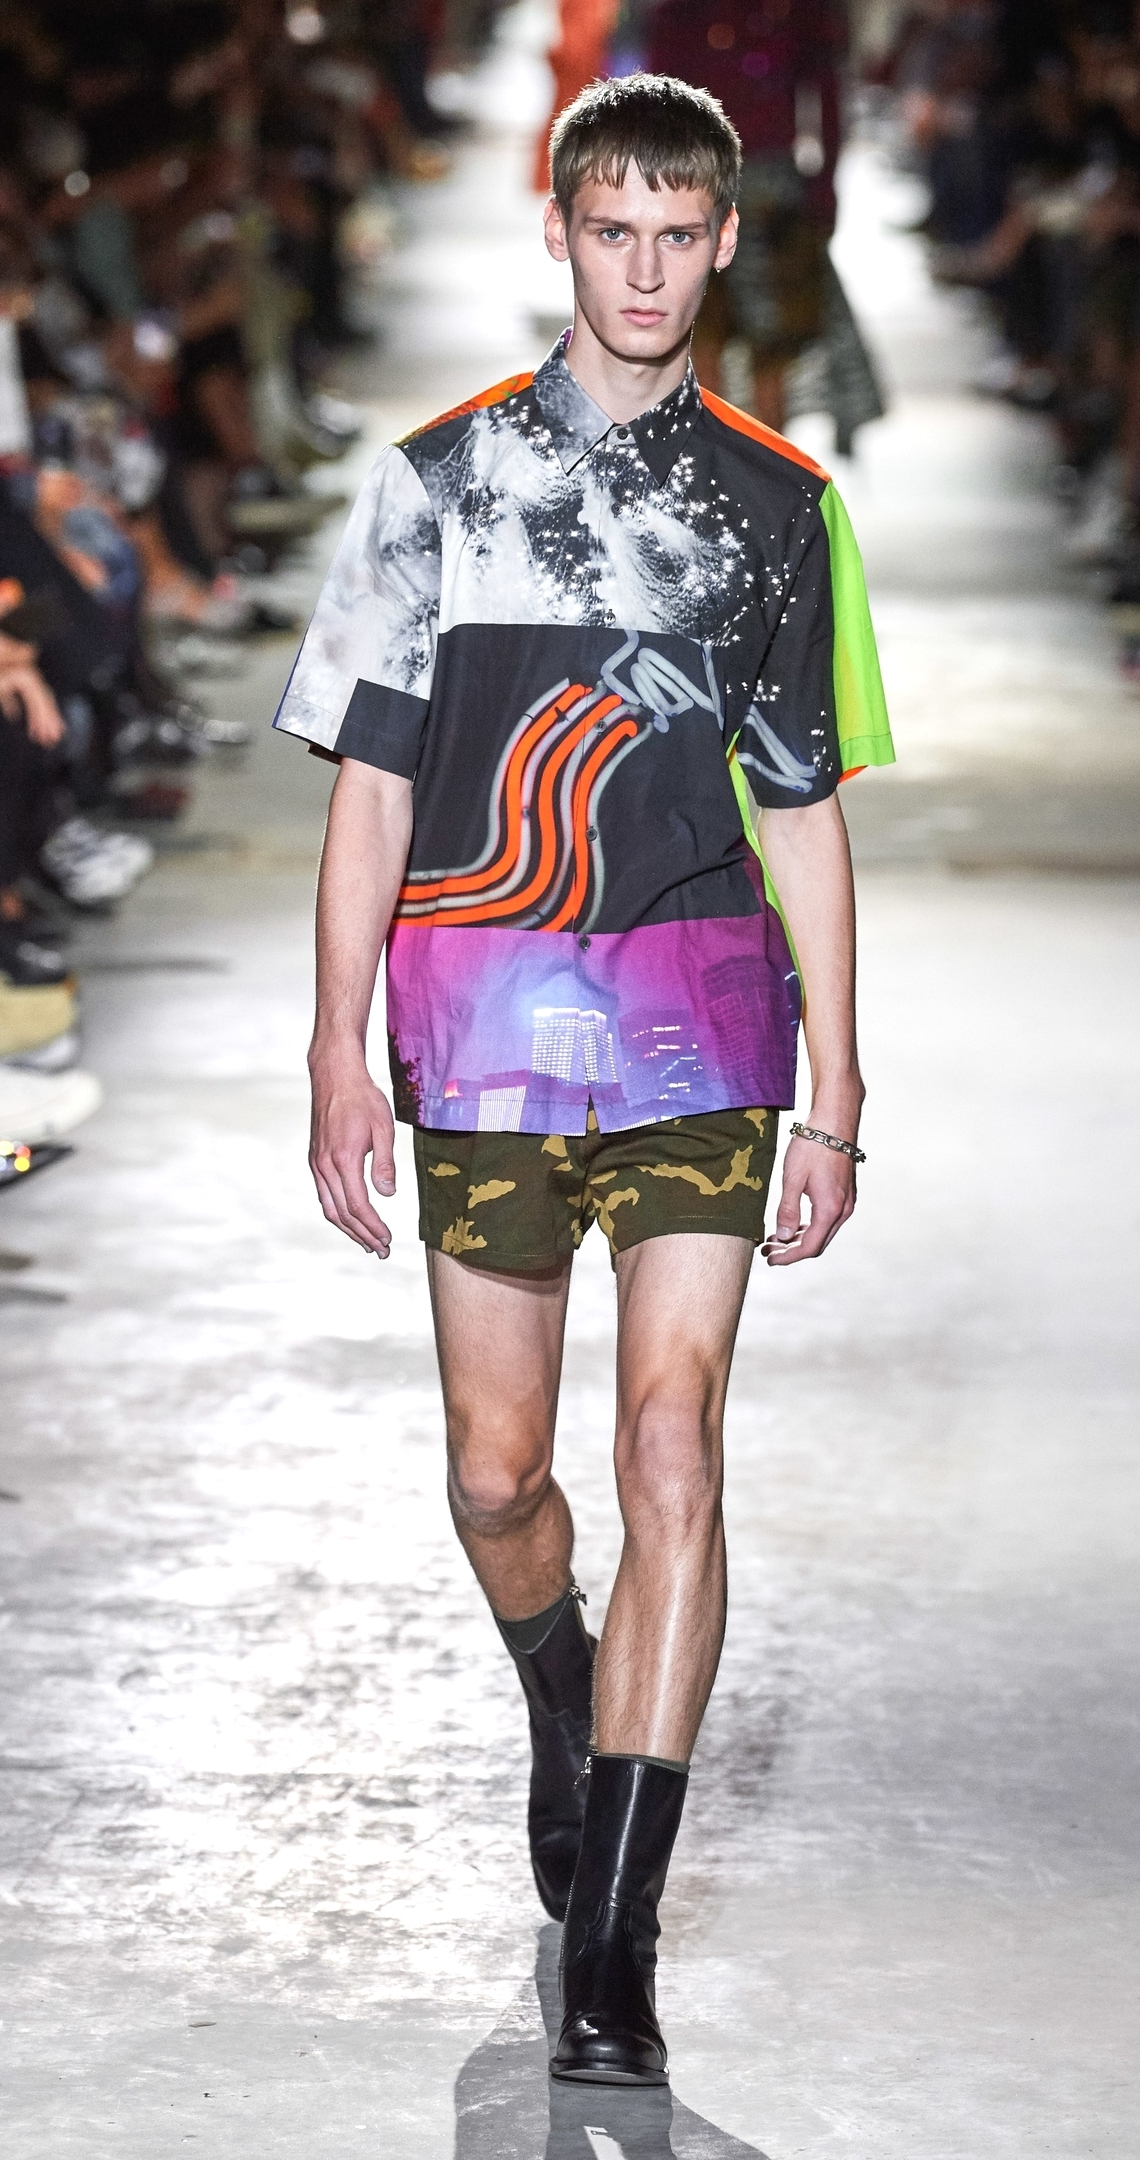 Образ из коллекции Dries Van Noten Spring/Summer 2020 Menswear